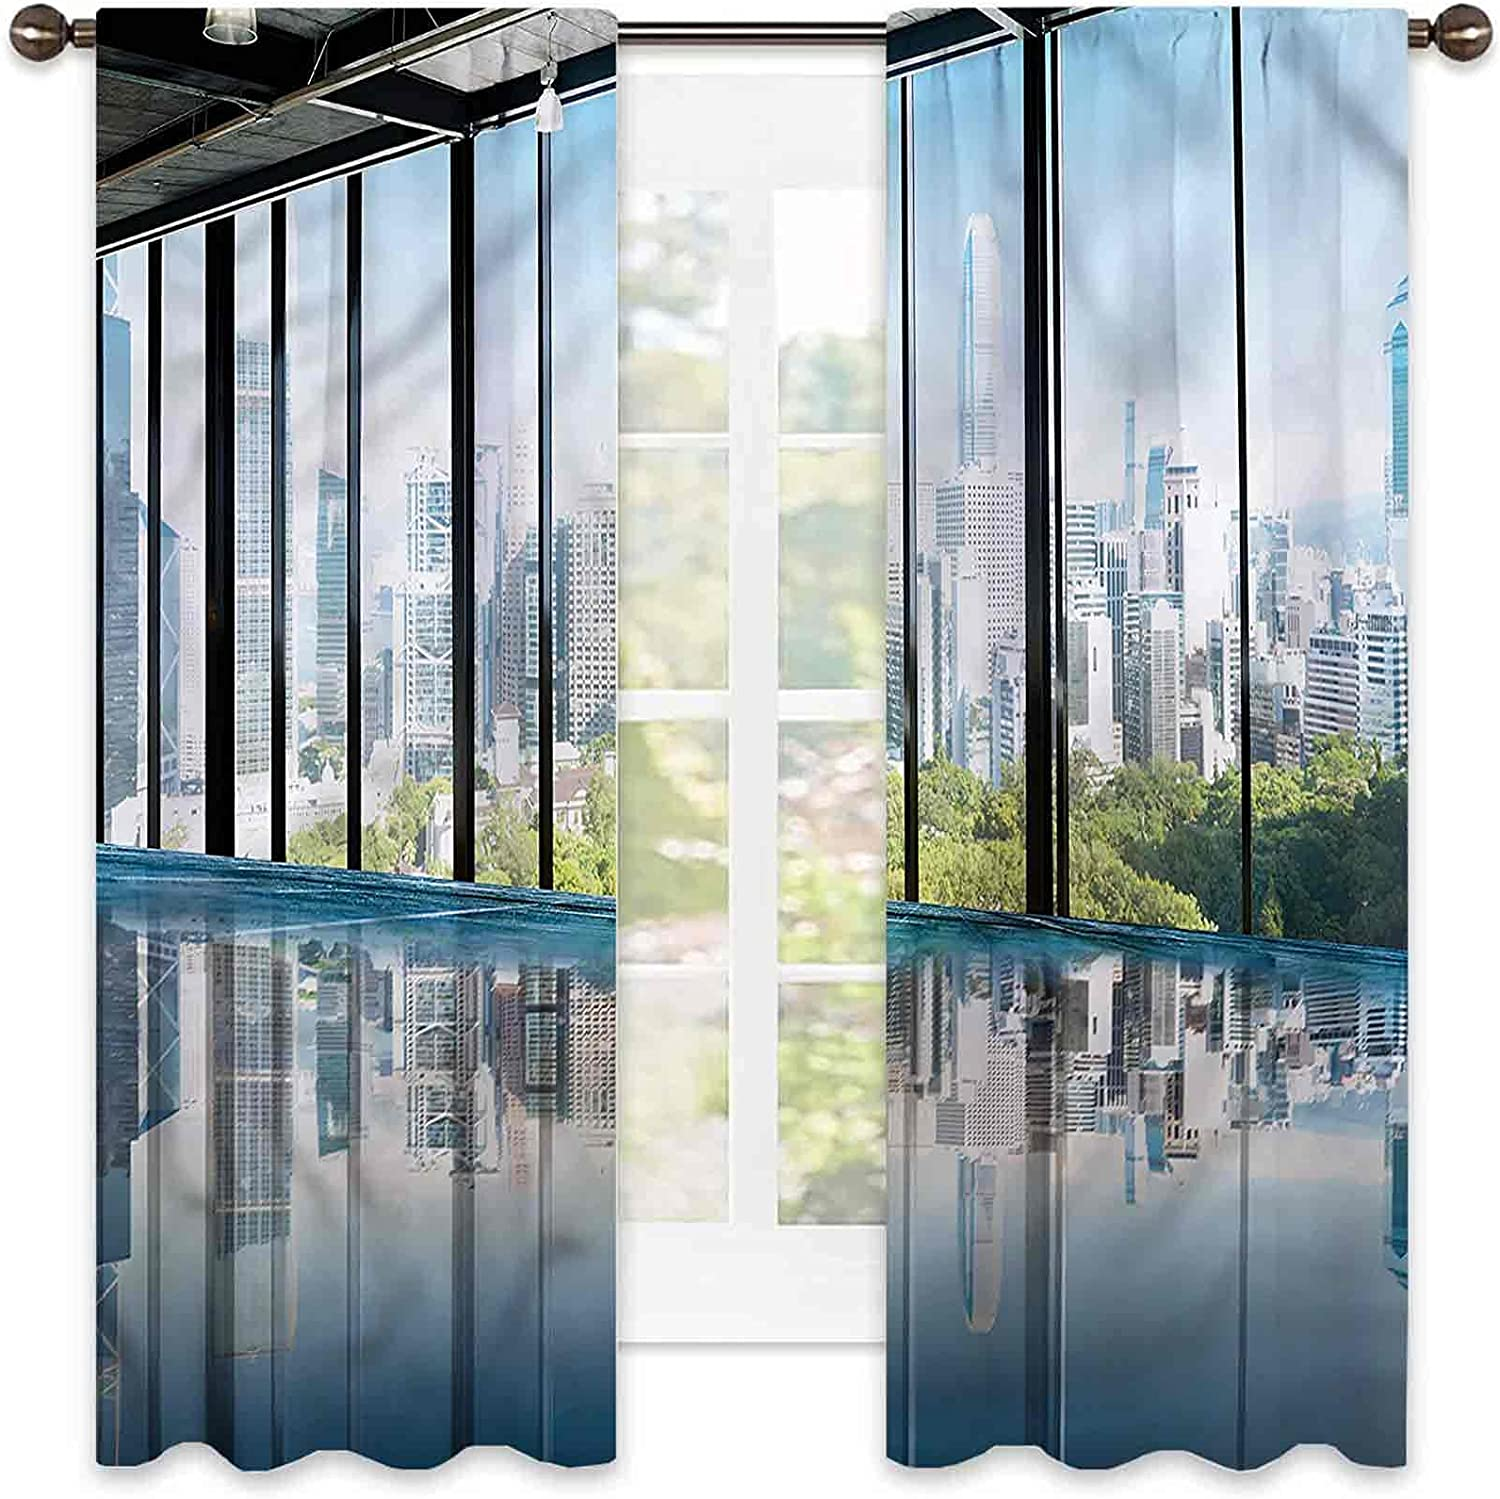 Modern Bedroom Rod Pocket Blackout Curtains Price reduction Park Central Forest National uniform free shipping